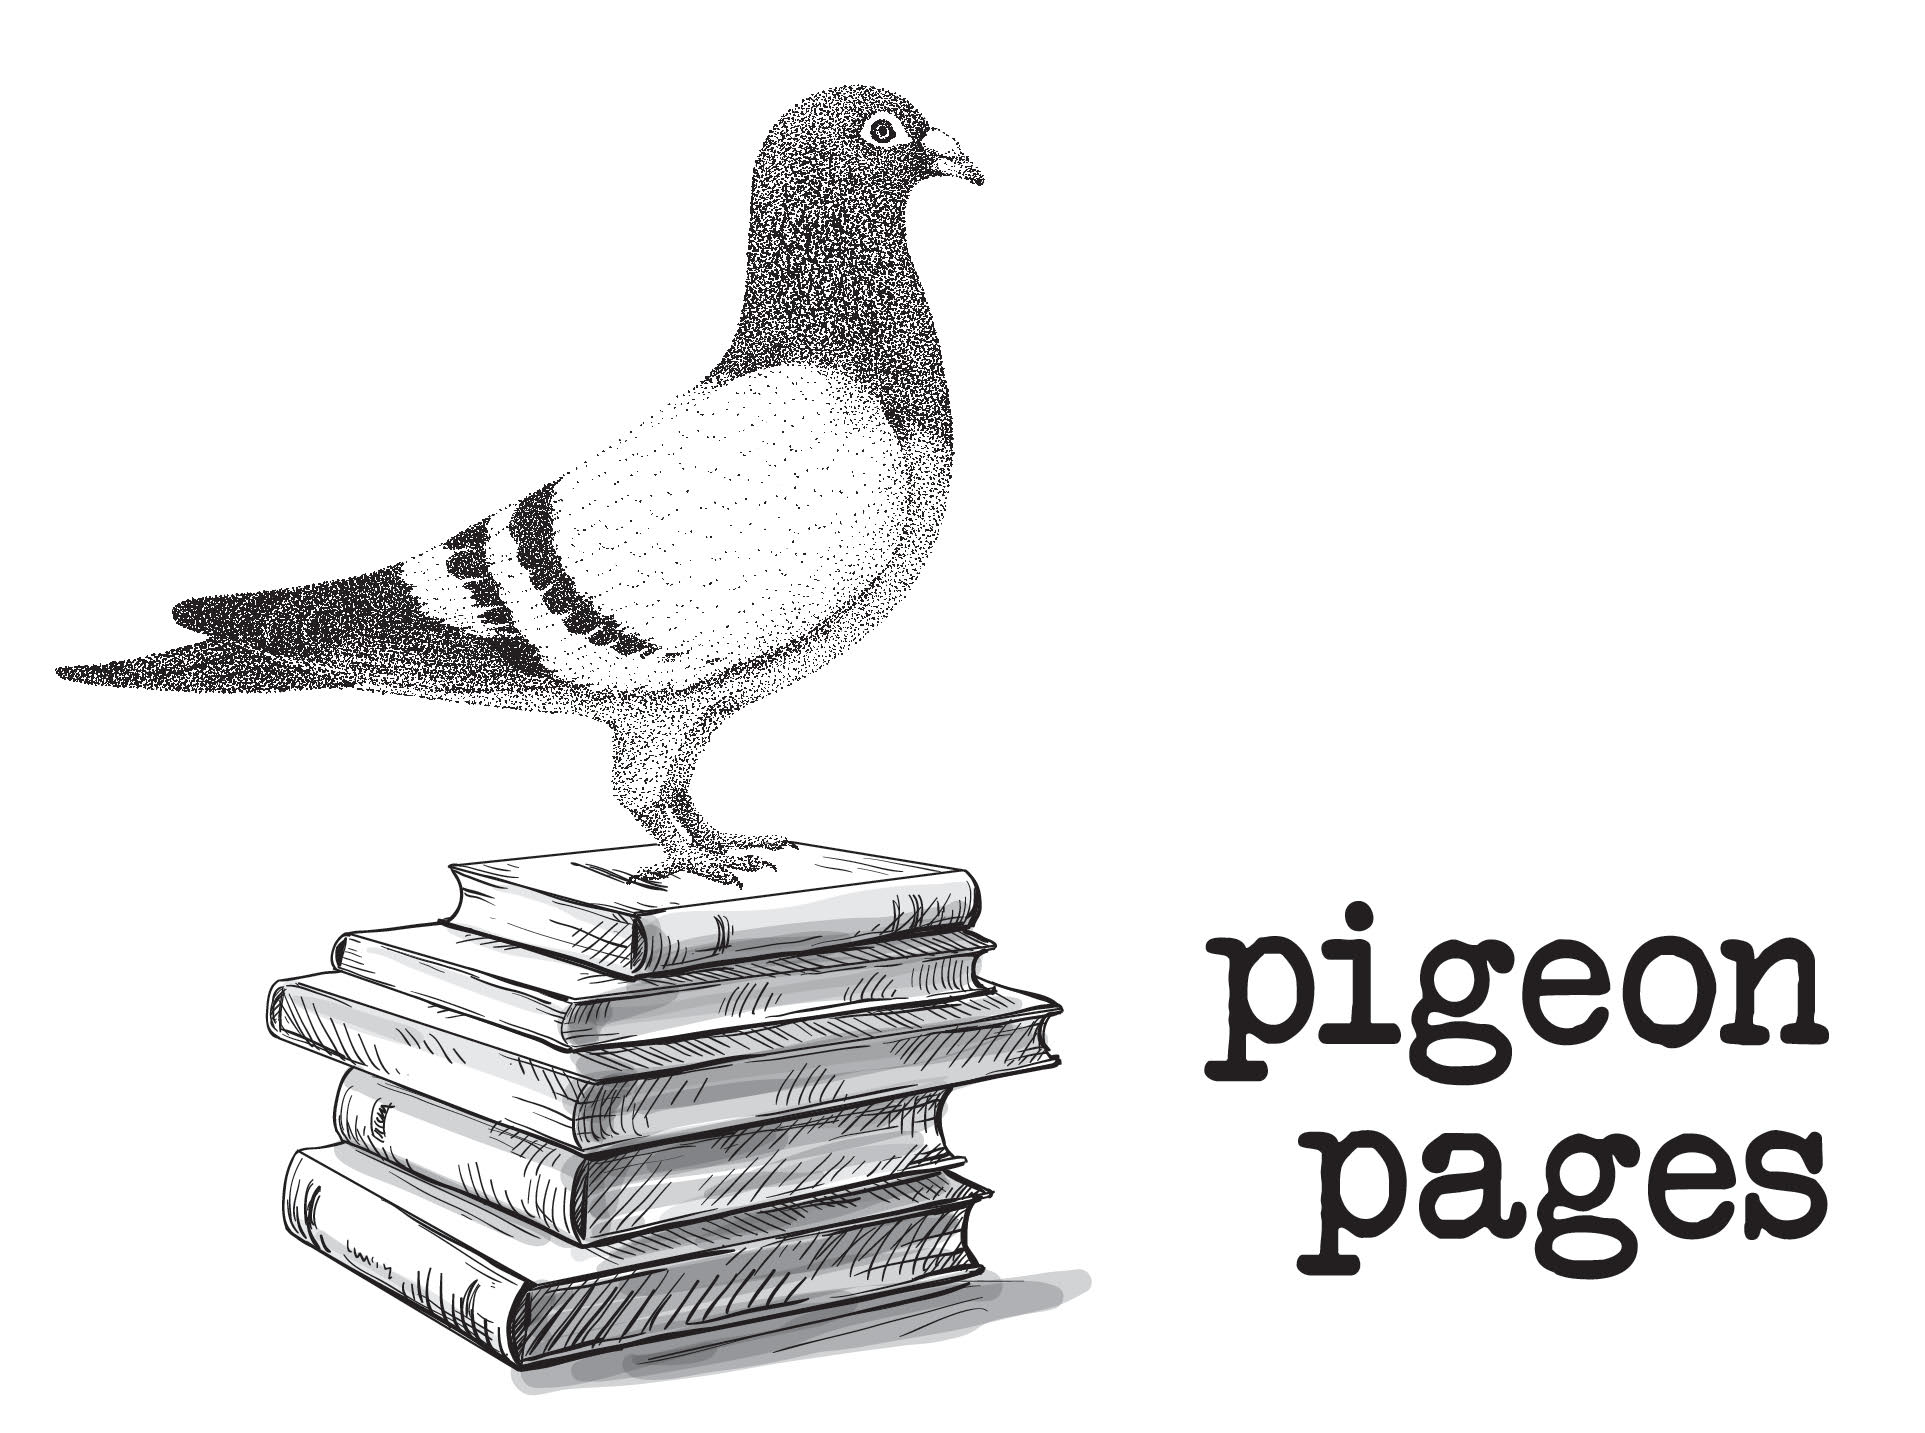 Pigeon Pages Literary Reading: Featuring Elissa Schappell, Joanna Scutts, Justine Champine, Marisa Siegel, and Amanda Claire Buckley- Hosted by Alisson Wood